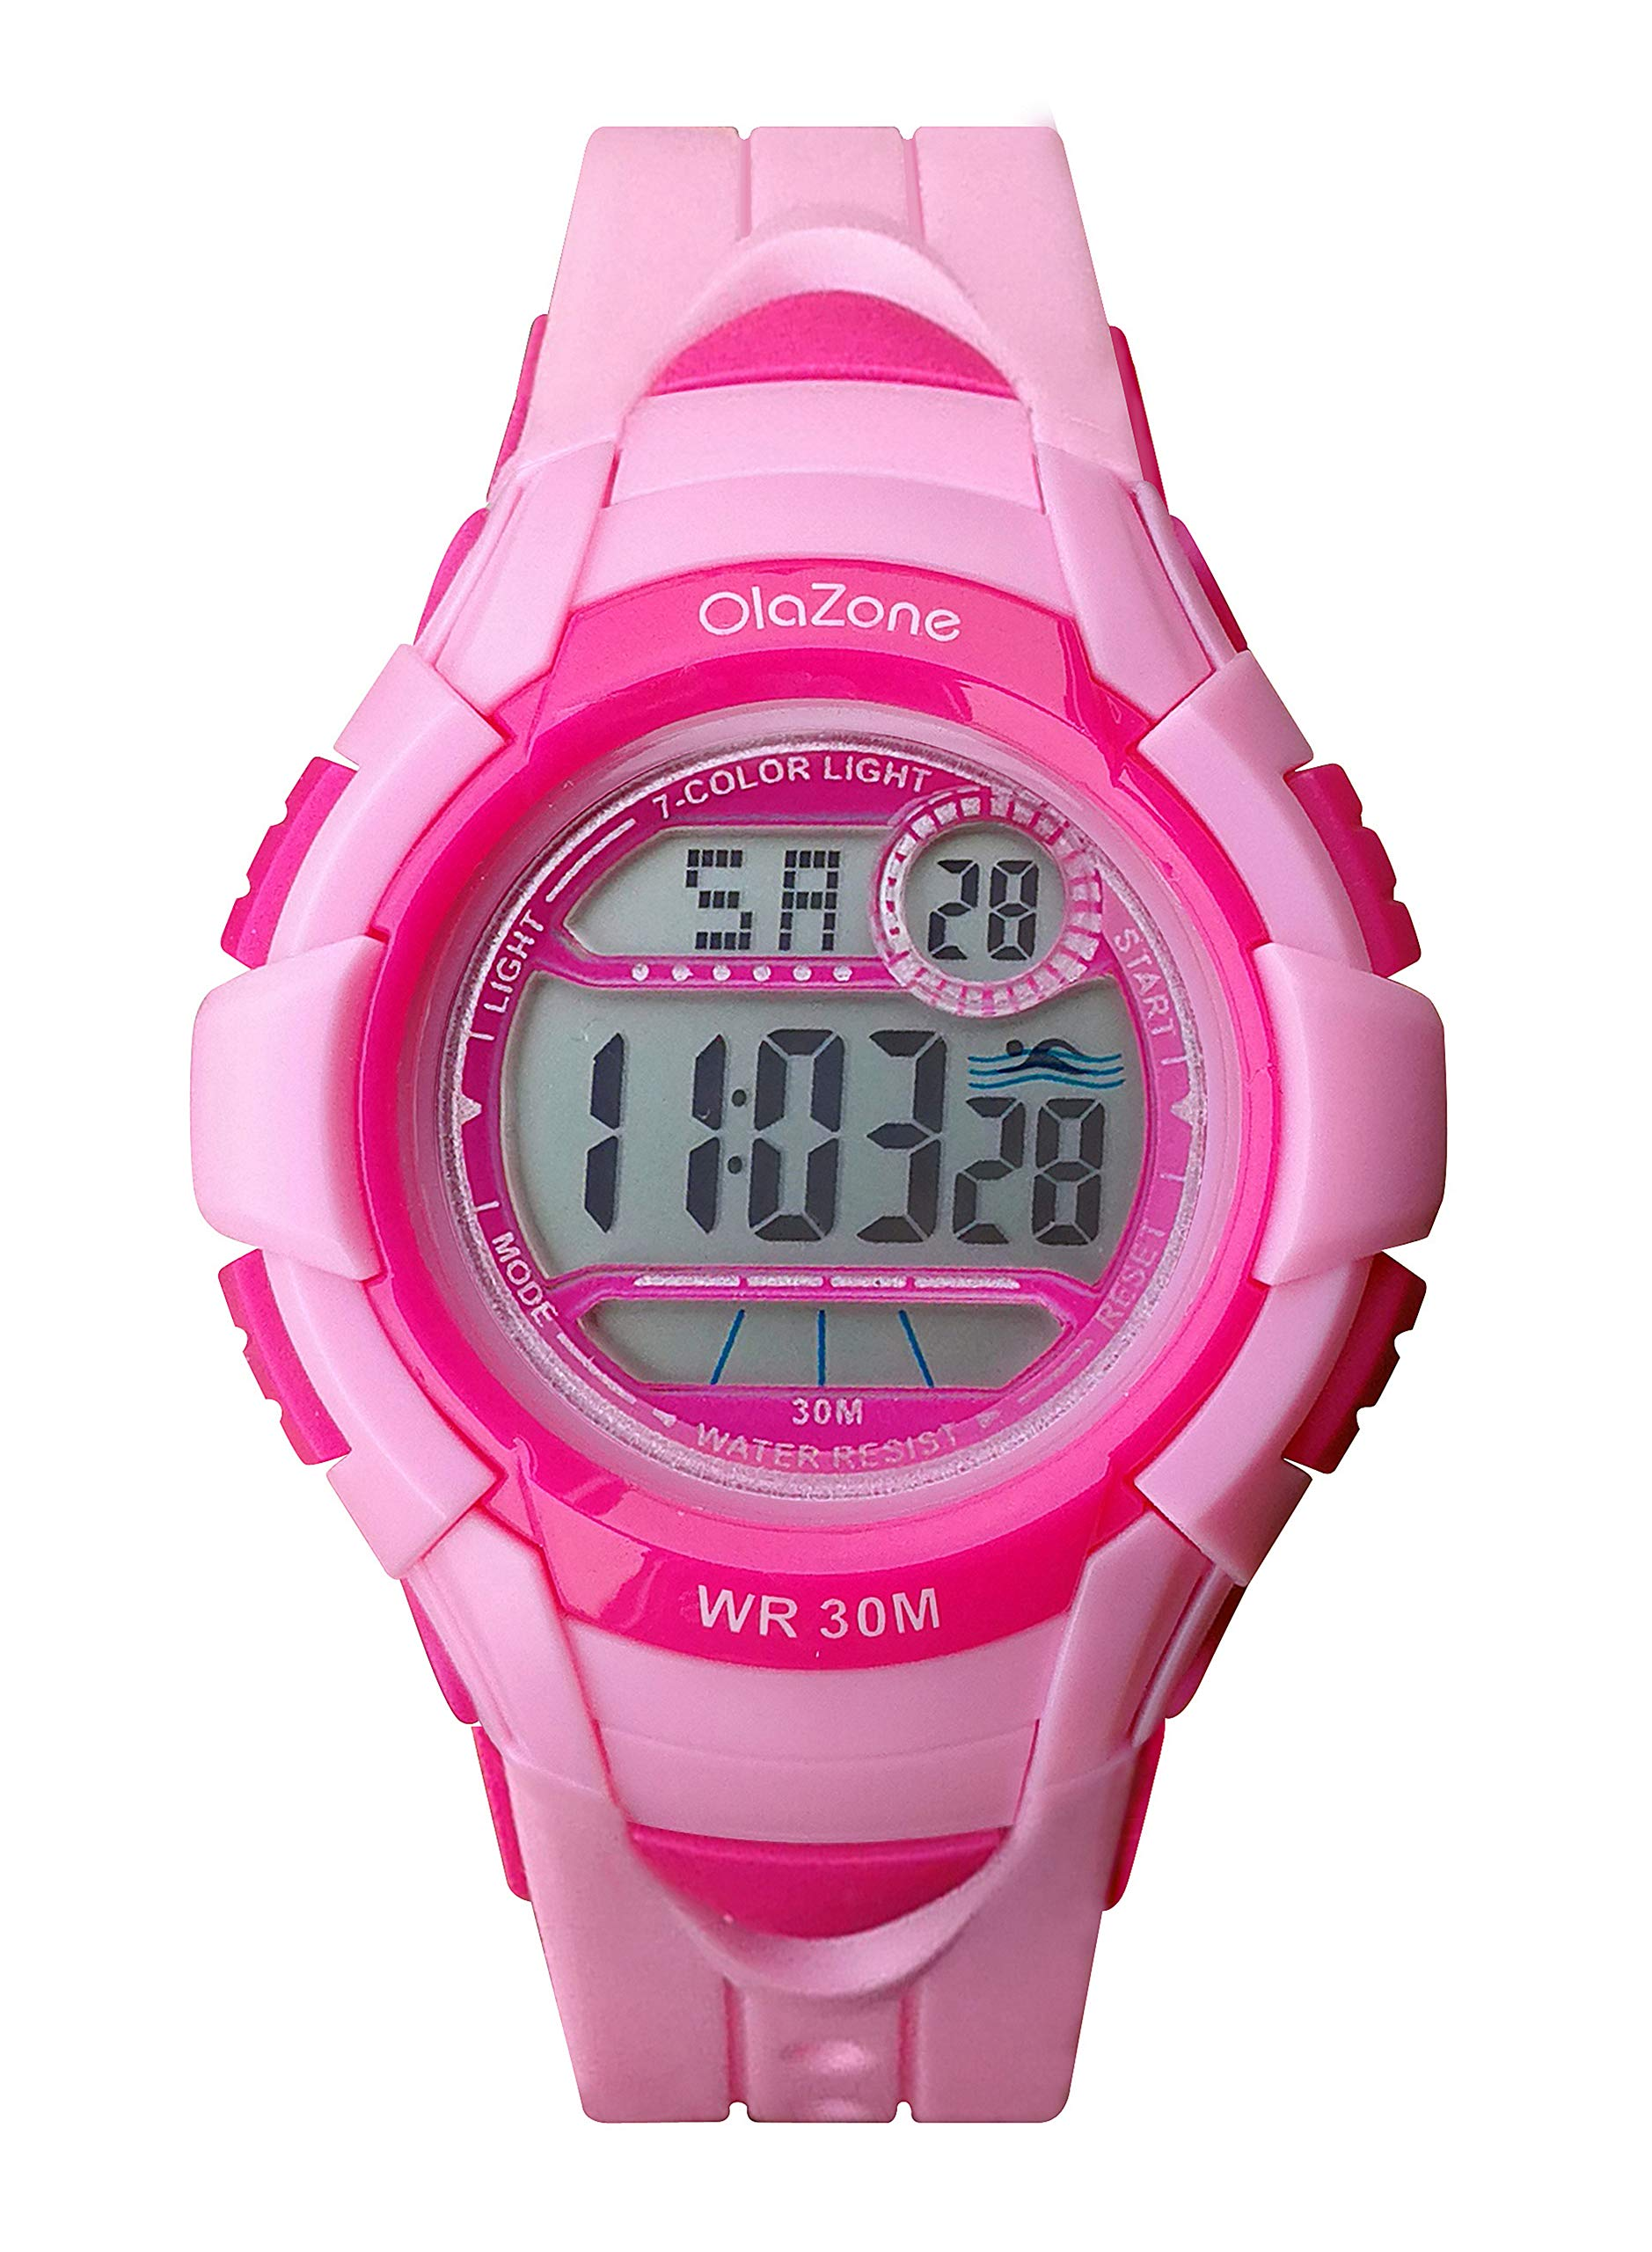 Kids Watch Girls Boys Digital Sports 7-Color Flashing Light Water Resistant 100FT Alarm Gifts for Girls Boys Age 7-10 (Pink) by OLAZONE